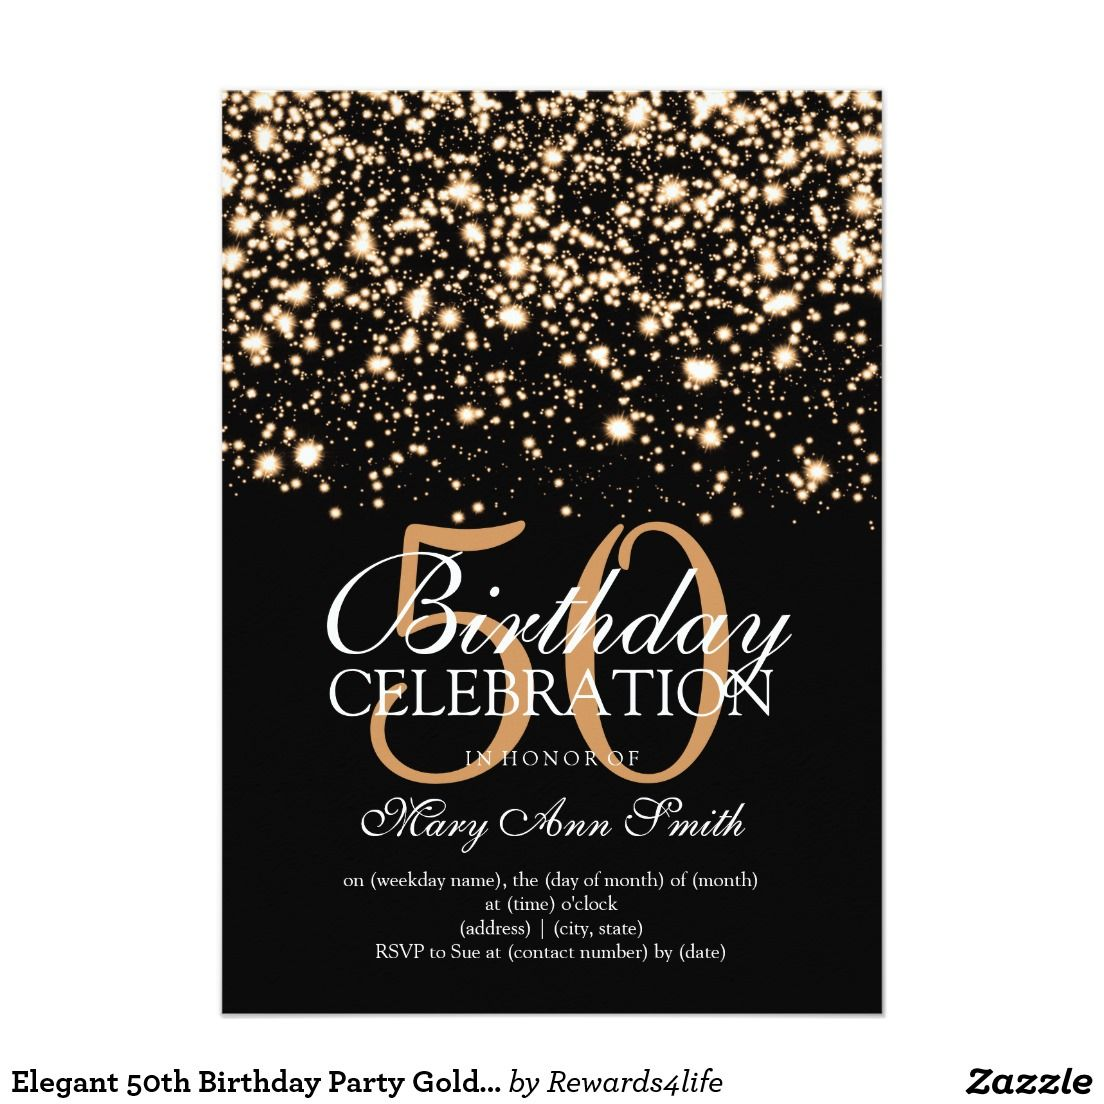 Elegant 50th Birthday Party Gold Midnight Glam Invitation | Zazzle.com |  30th birthday party invitations, Glam invitation, Elegant birthday  invitations